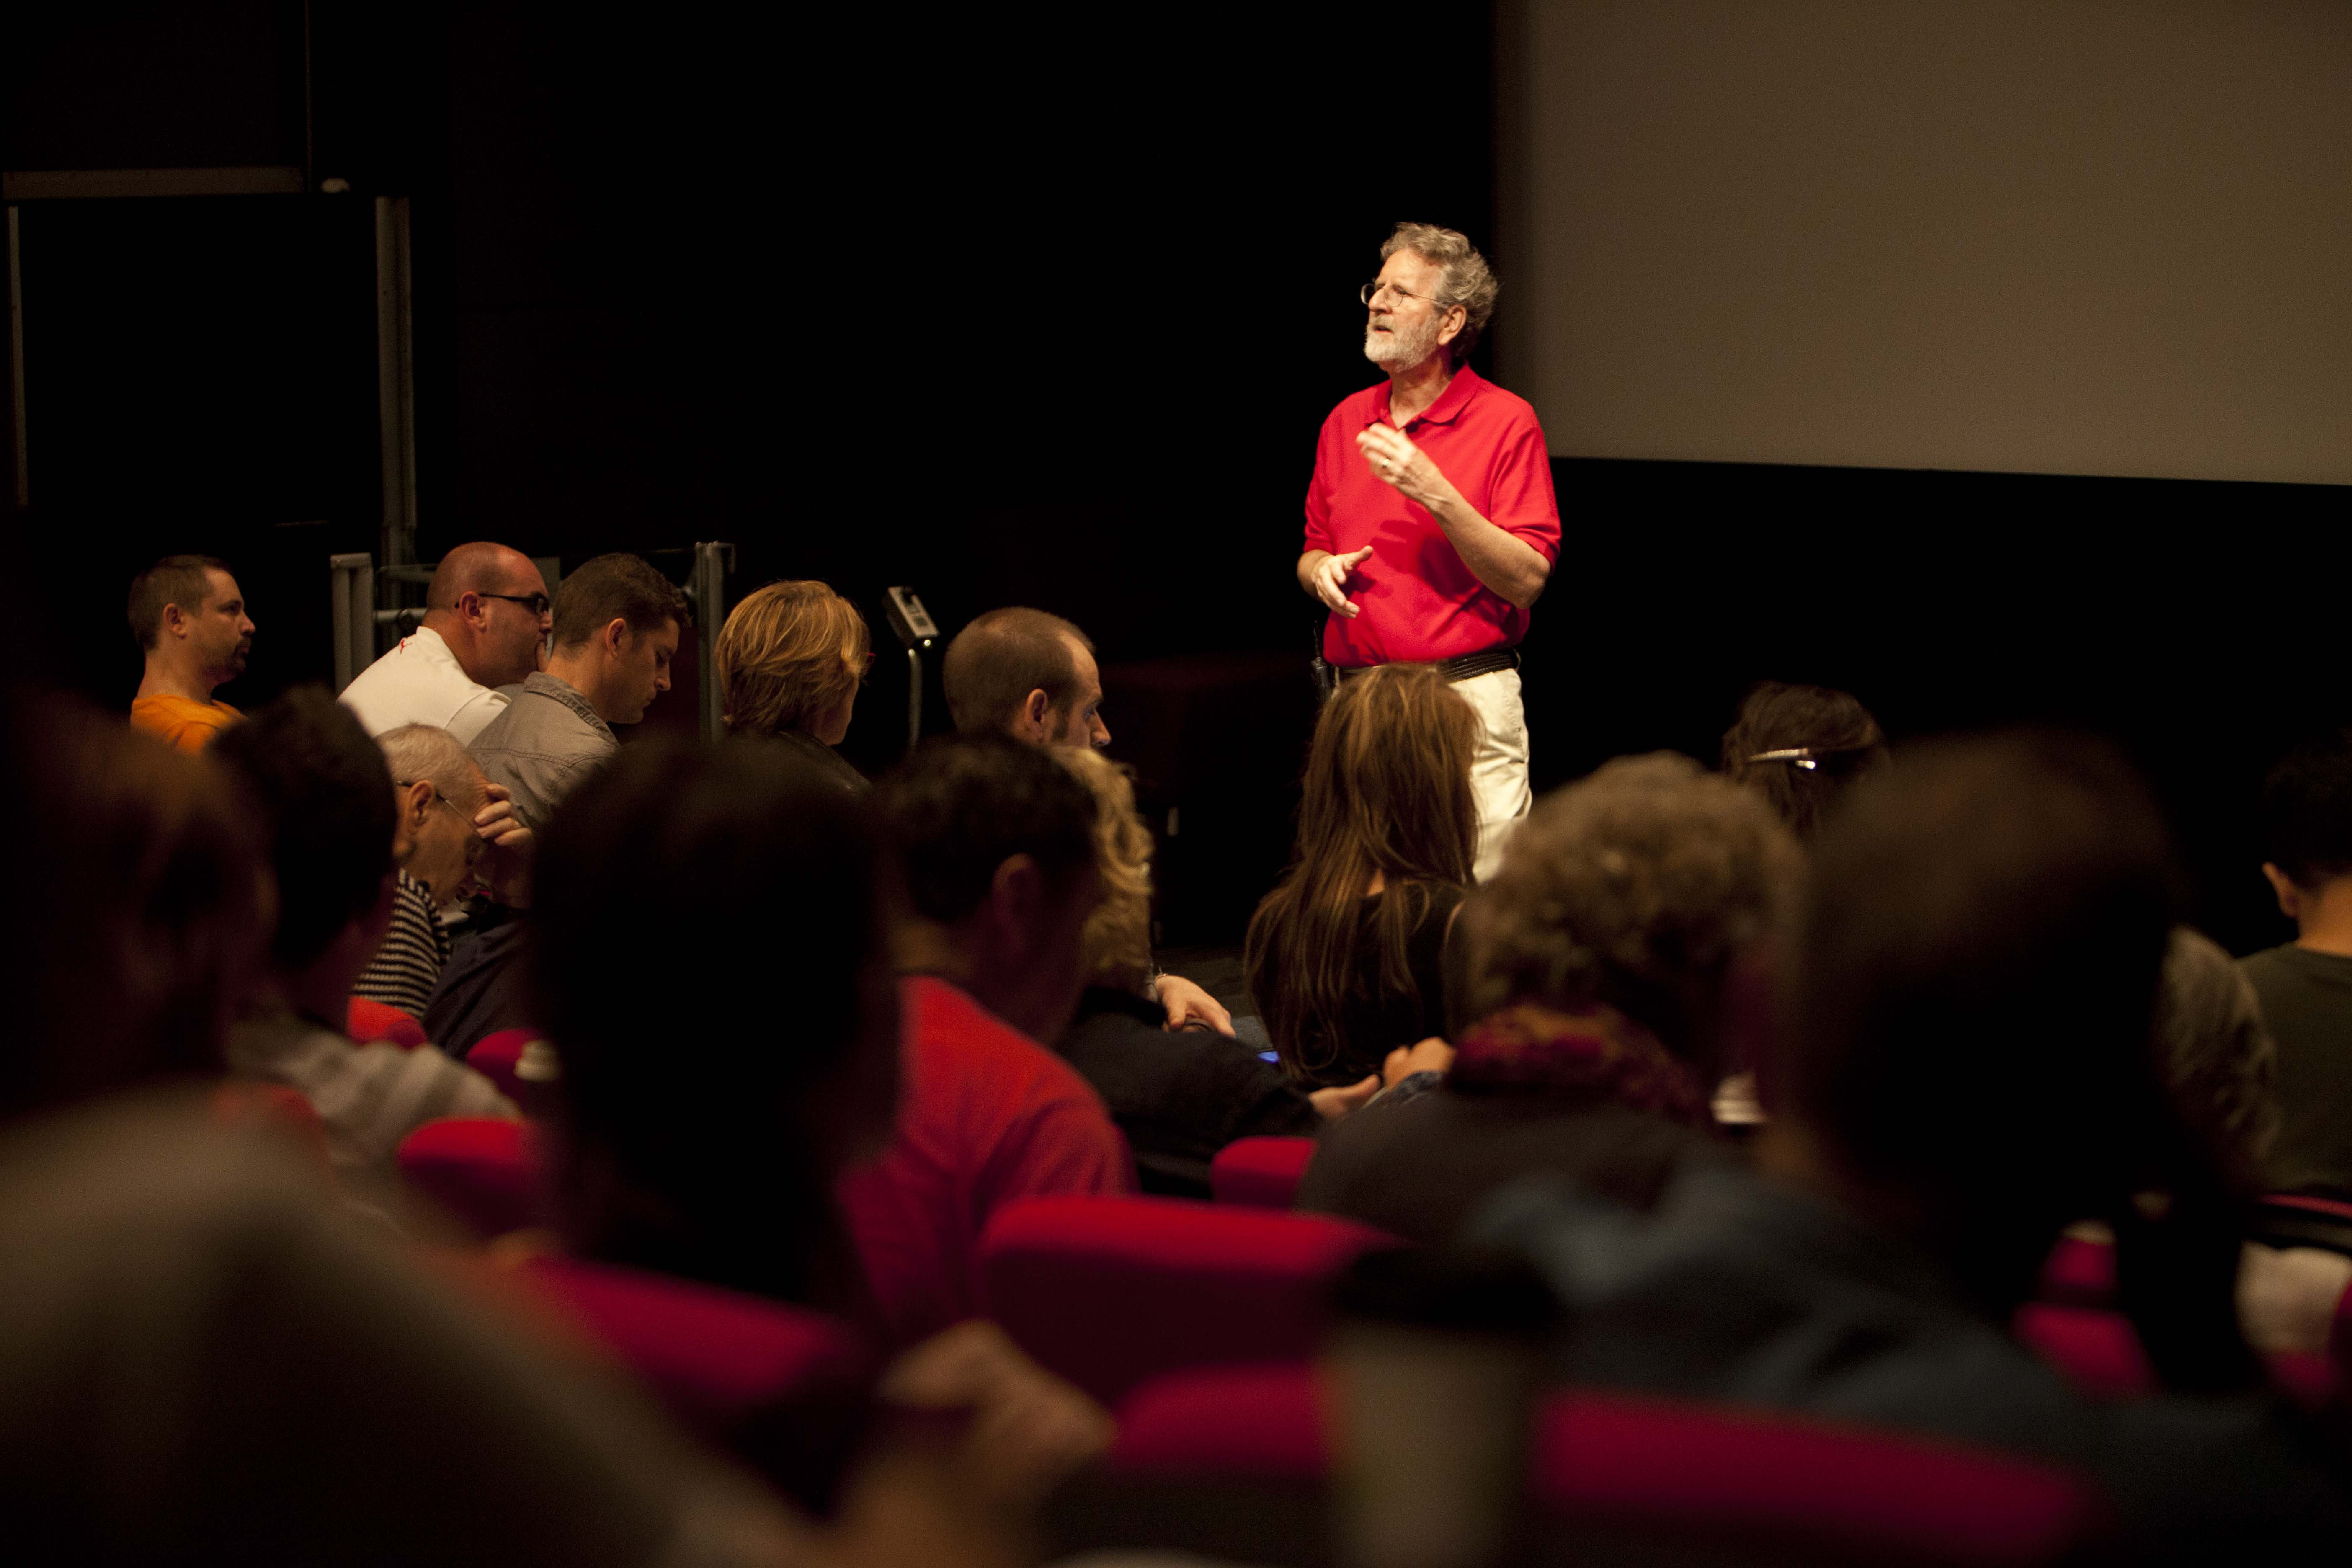 Hollywood Story Coach, Michael Hauge Presents Story Presentations to Large Audiences All Over the World